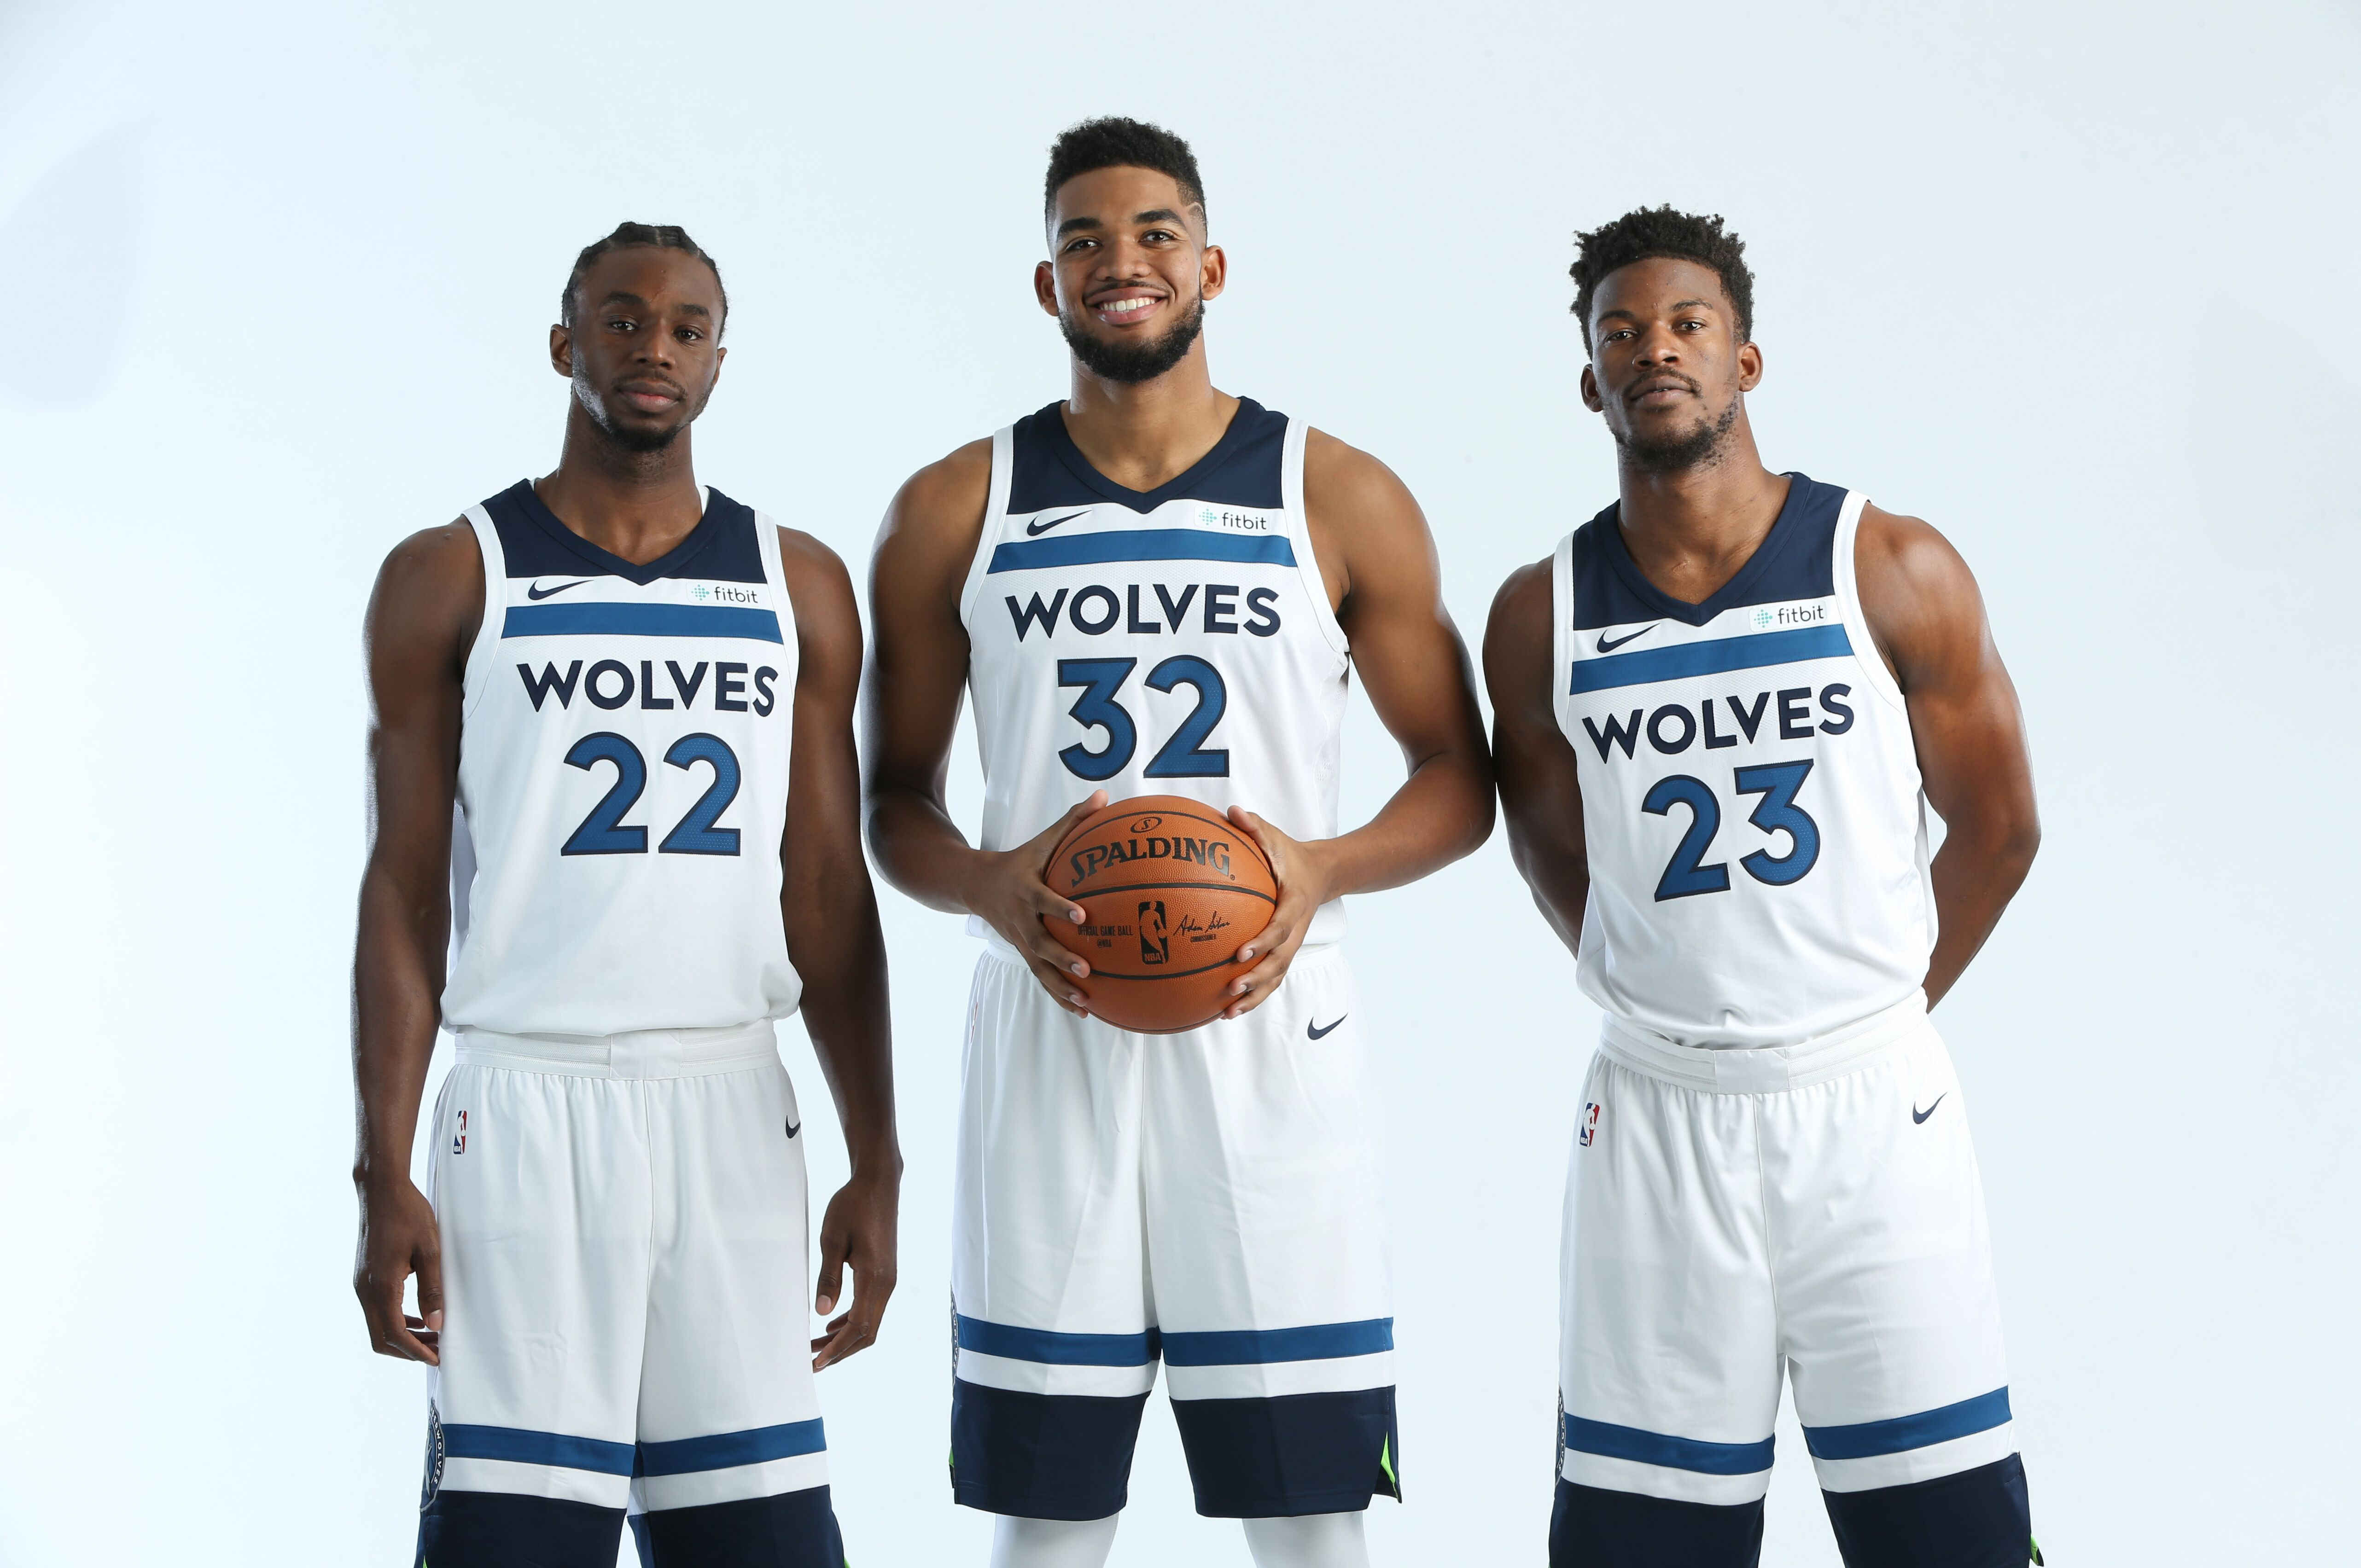 Minnesota Timberwolves Who will win Wolves team awards